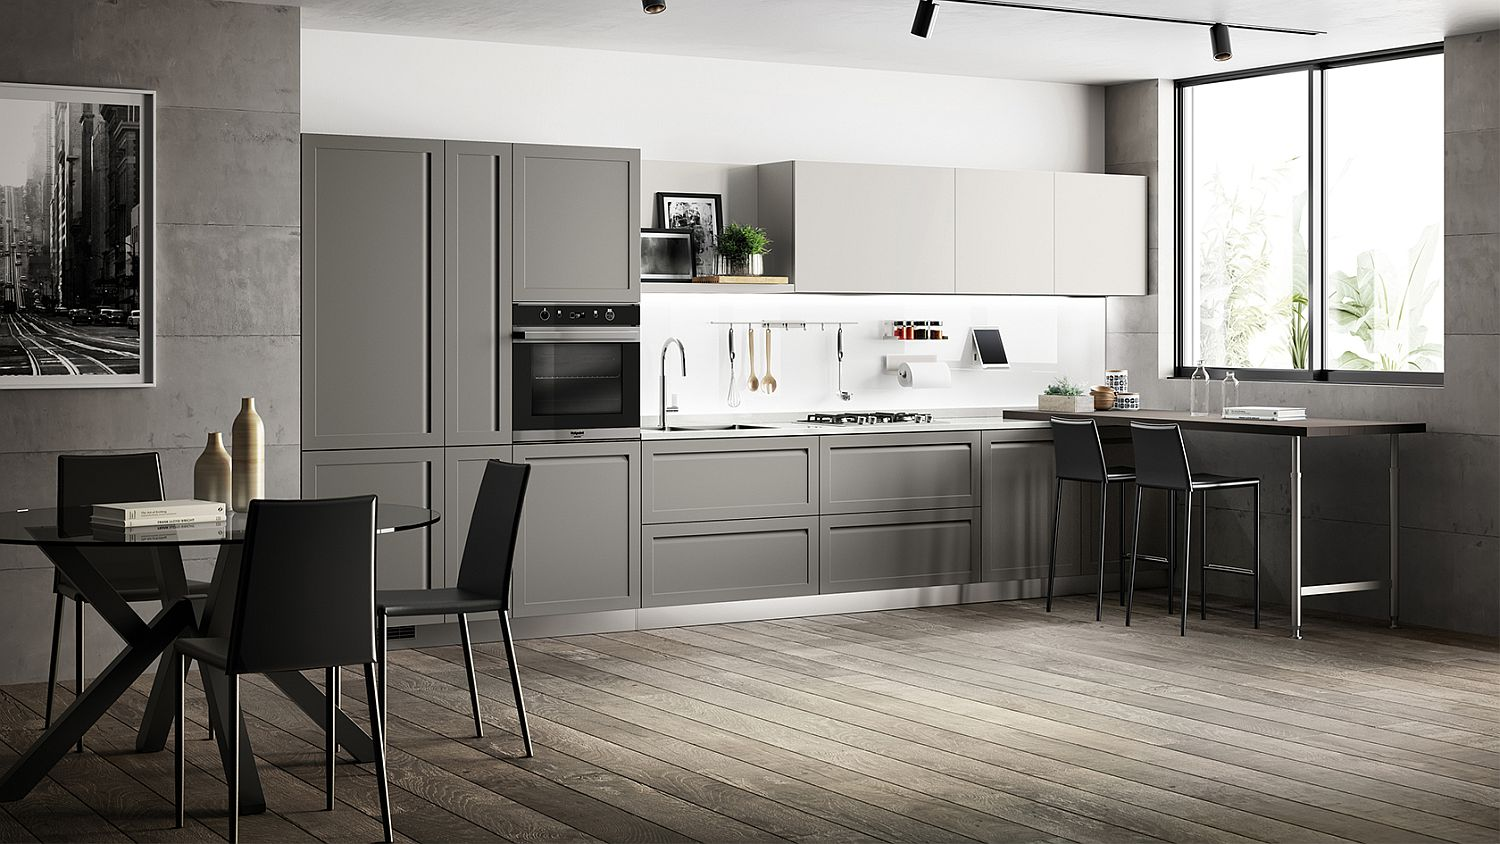 L-shaped kitchen in the corner in gray and white